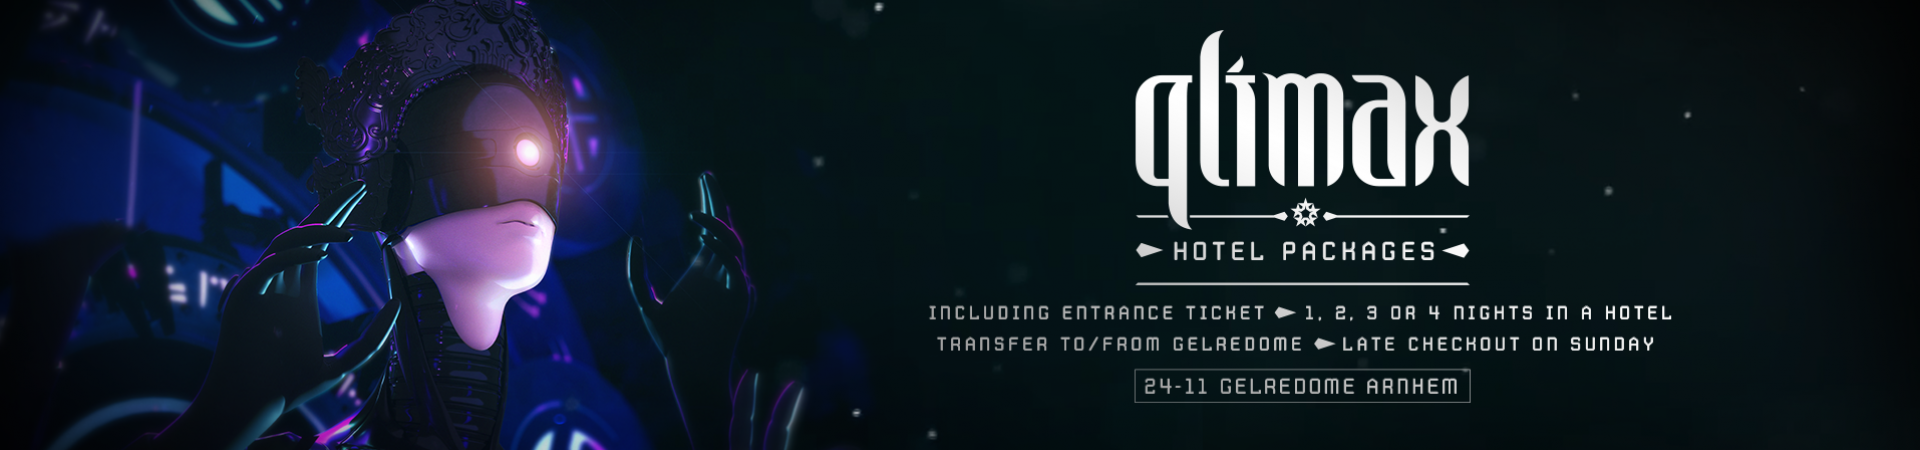 Qlimax Travel Website header